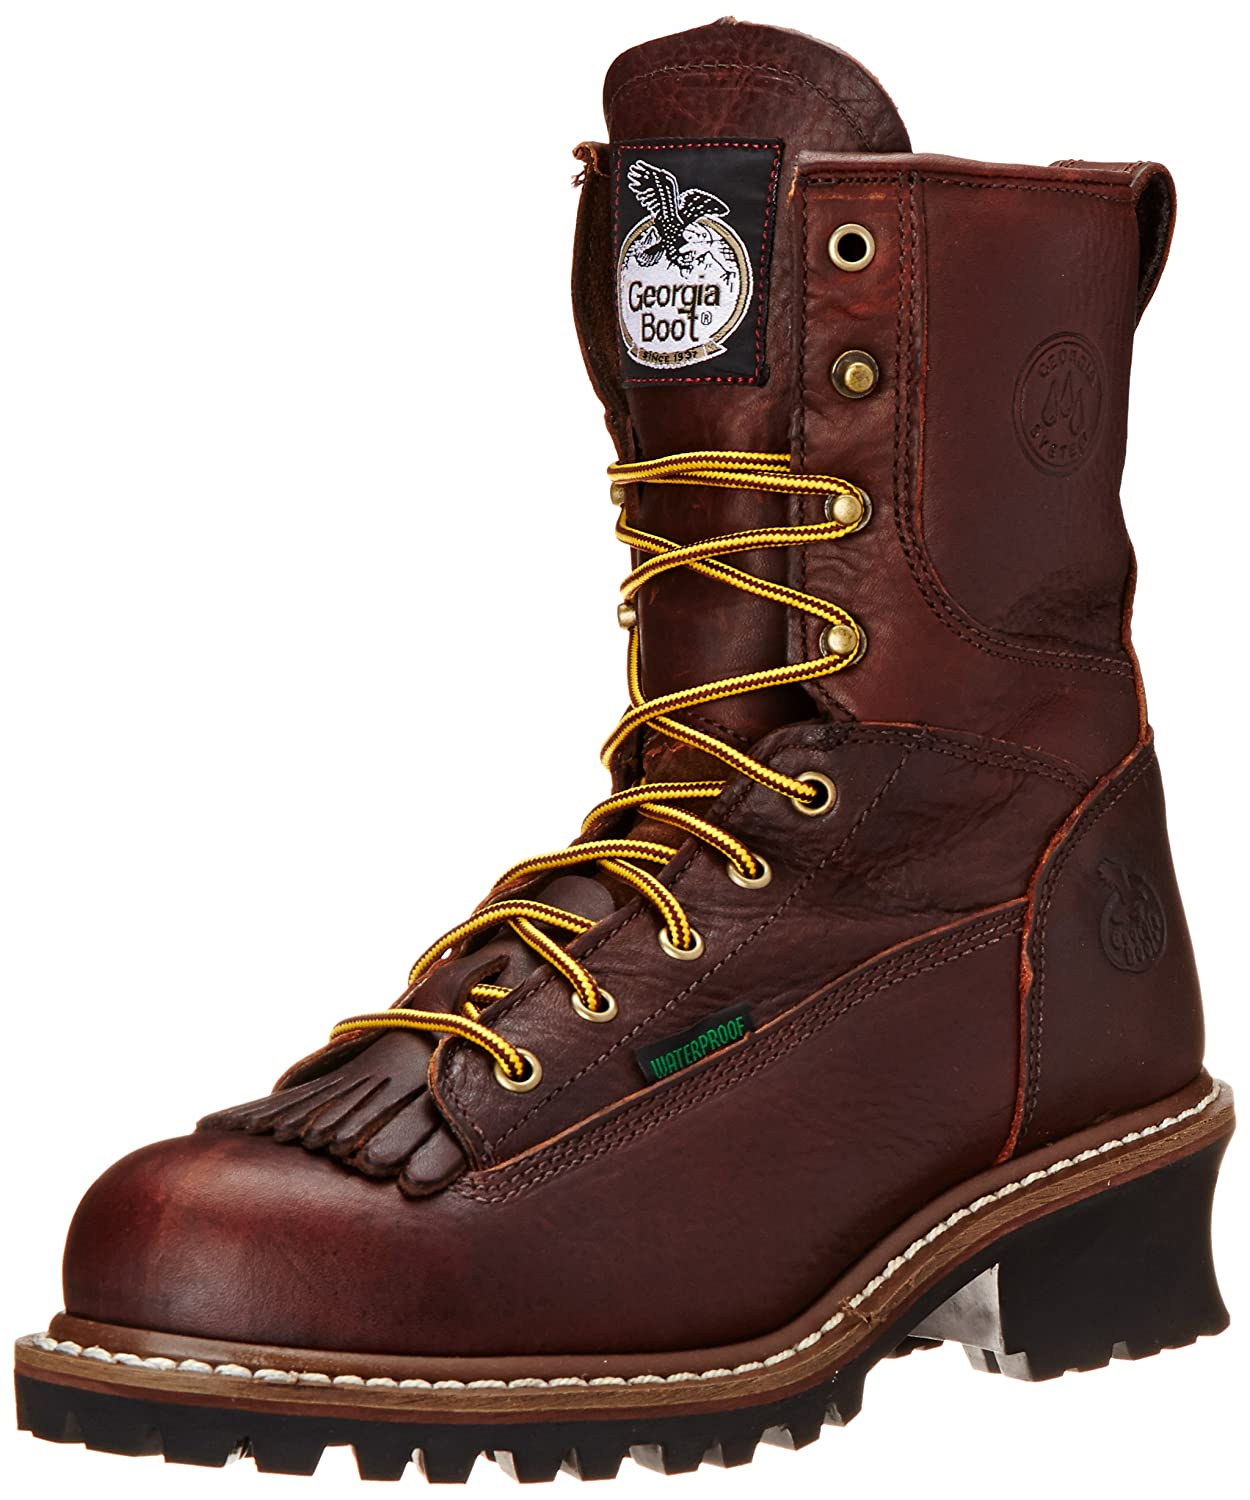 9cfcac9f0bb Georgia Boot Men's Loggers G7313 Work Boot